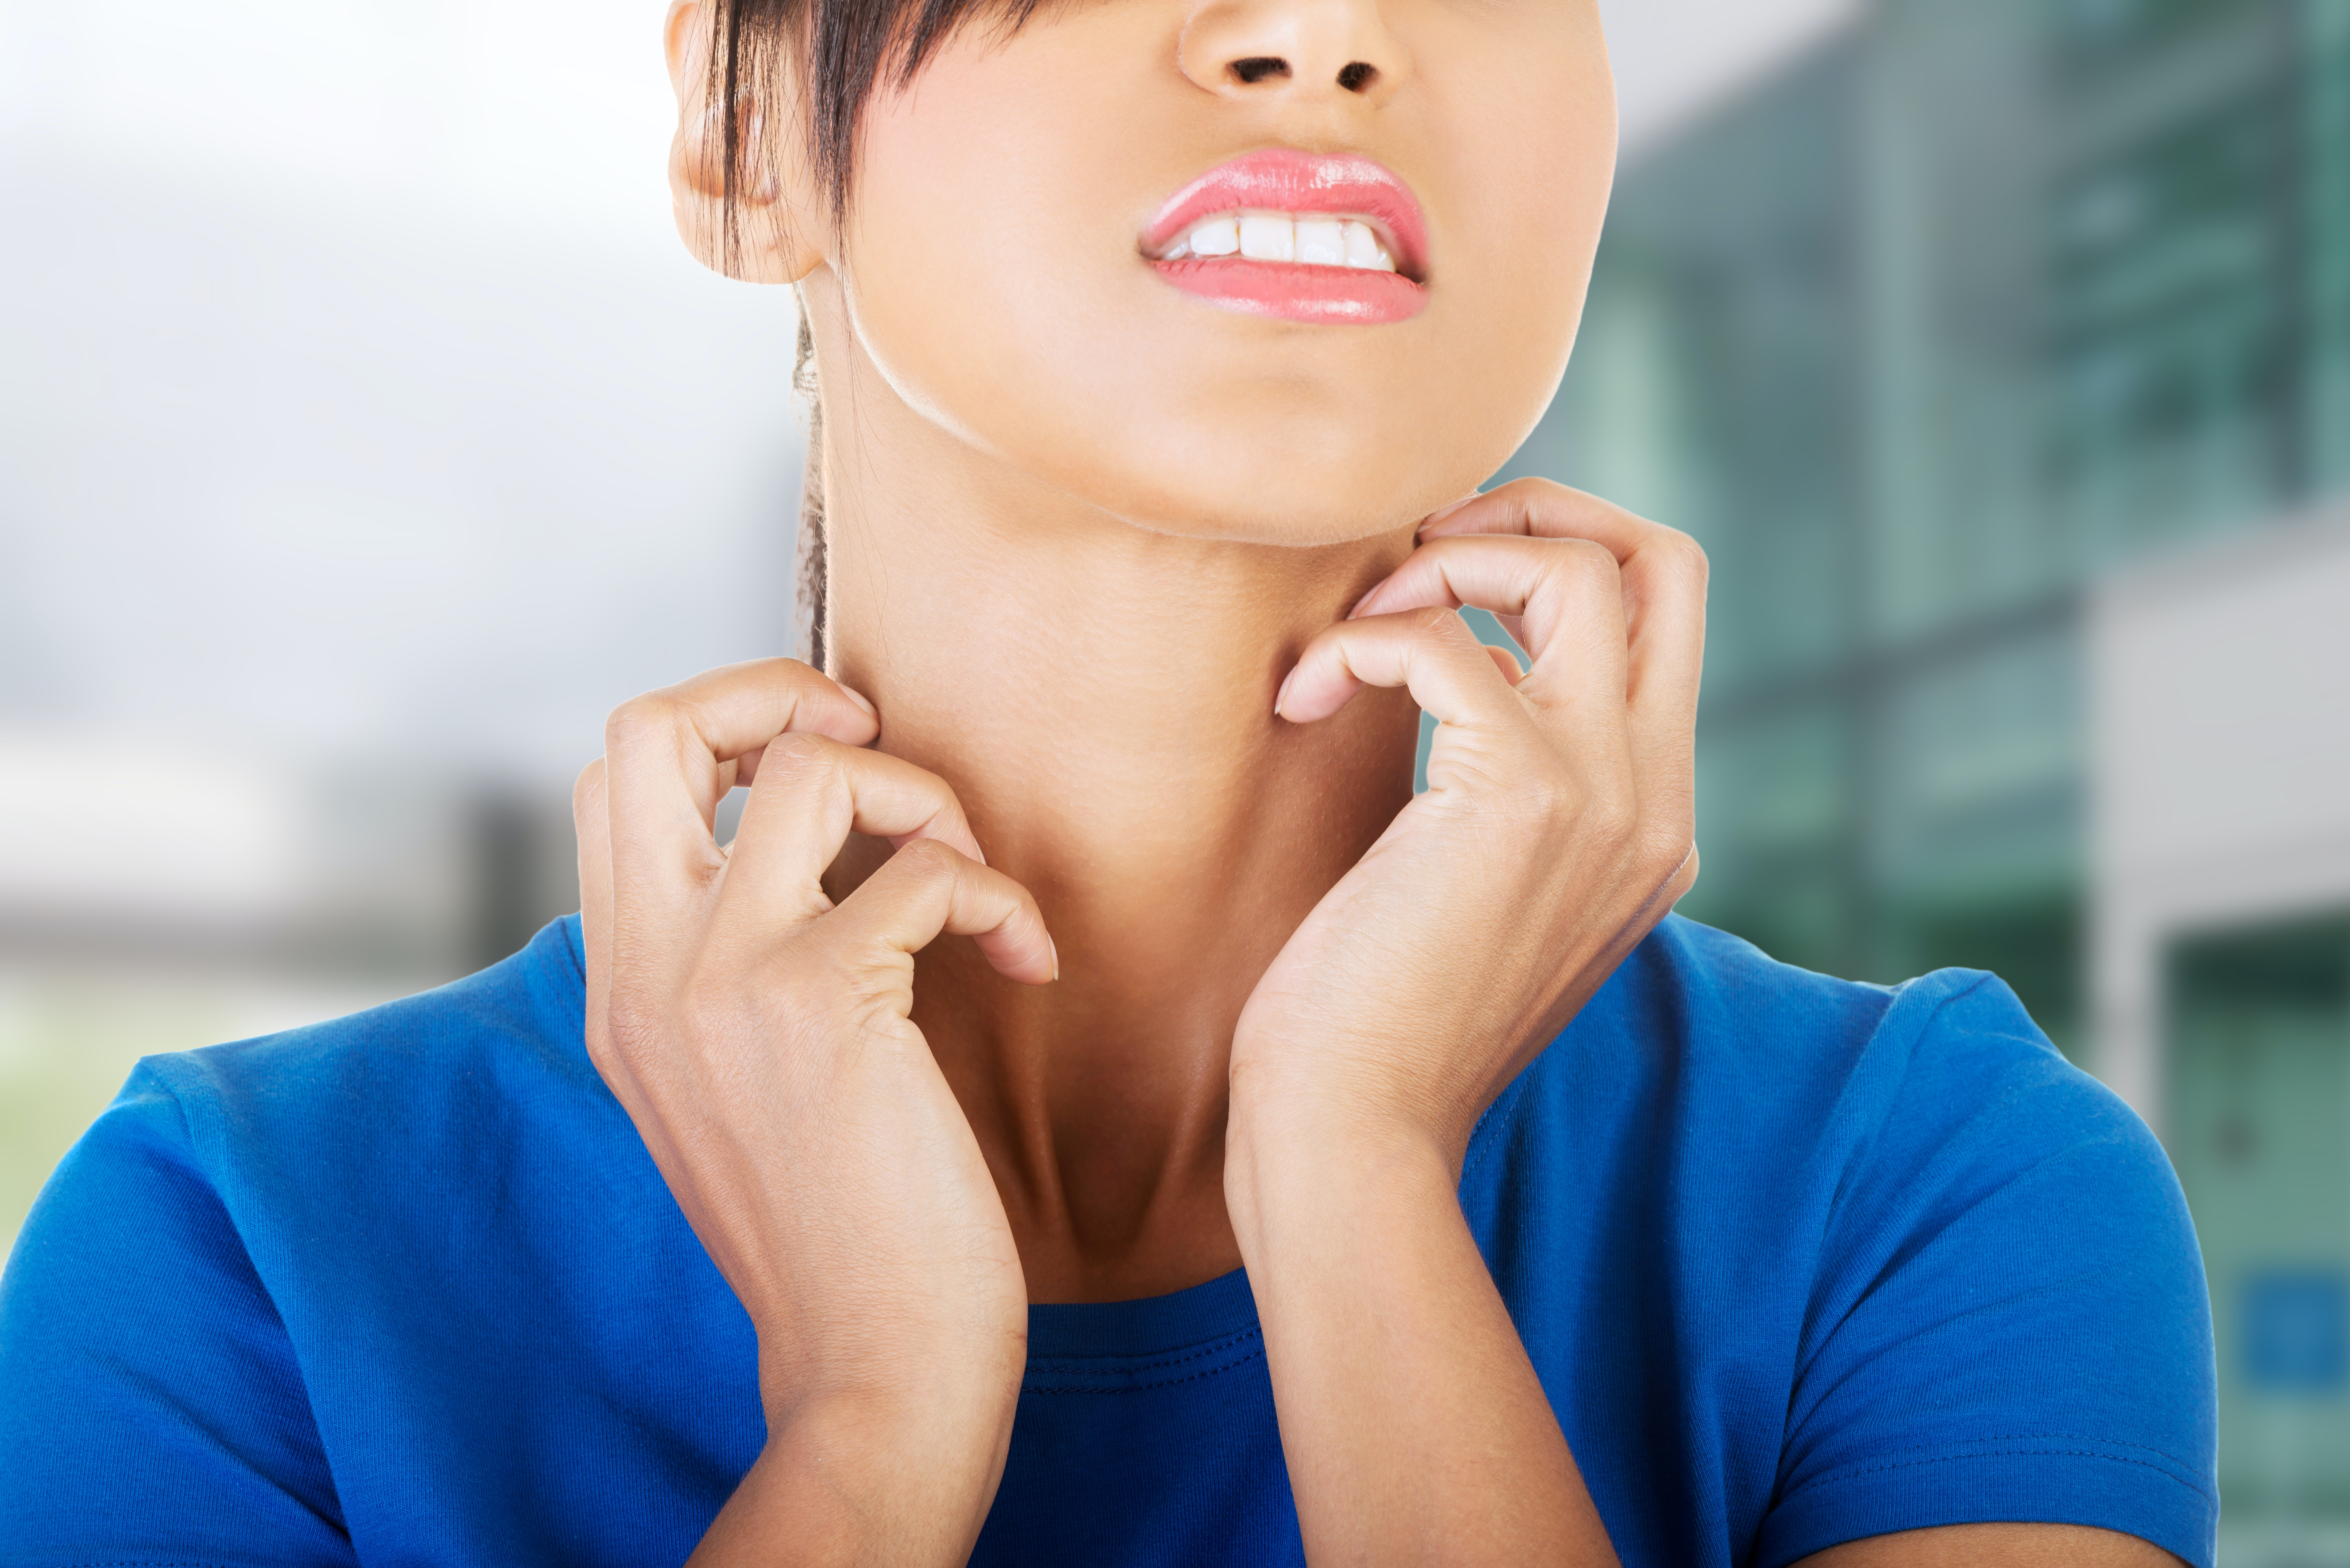 An image depicting a person suffering from neck itch symptoms